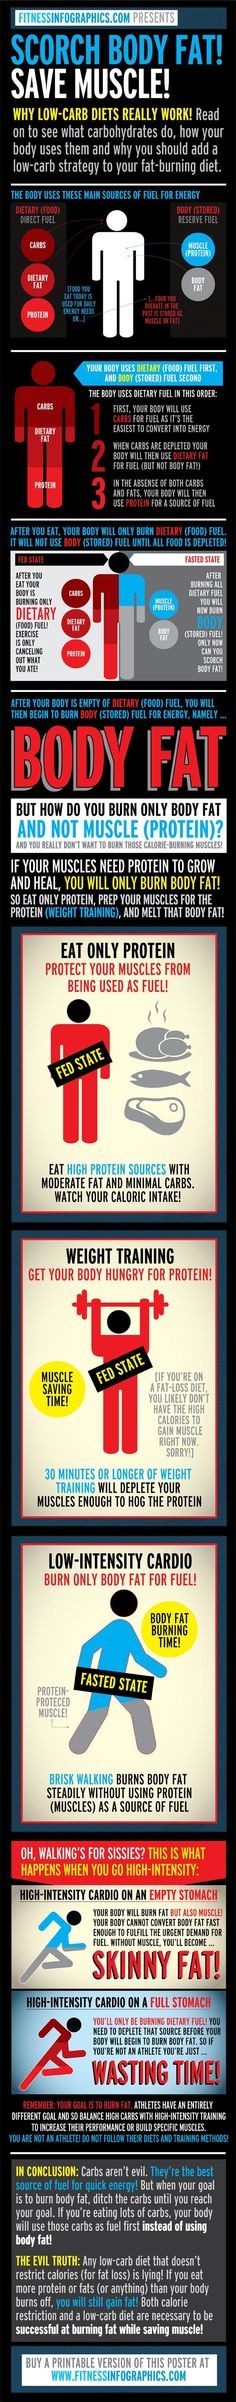 Eat STOP Eat - Scorch Body Fat, Save Muscle Infographic: How bodies burn fat, what/when to train/eat - In Just One Day This Simple Strategy Frees You From Complicated Diet Rules - And Eliminates Rebound Weight Gain Fat Loss Diet, Weight Loss Diet Plan, Weight Loss Tips, Losing Weight, Weight Gain, Loose Weight, Nutrition Crossfit, Sport Nutrition, Nutrition Plate